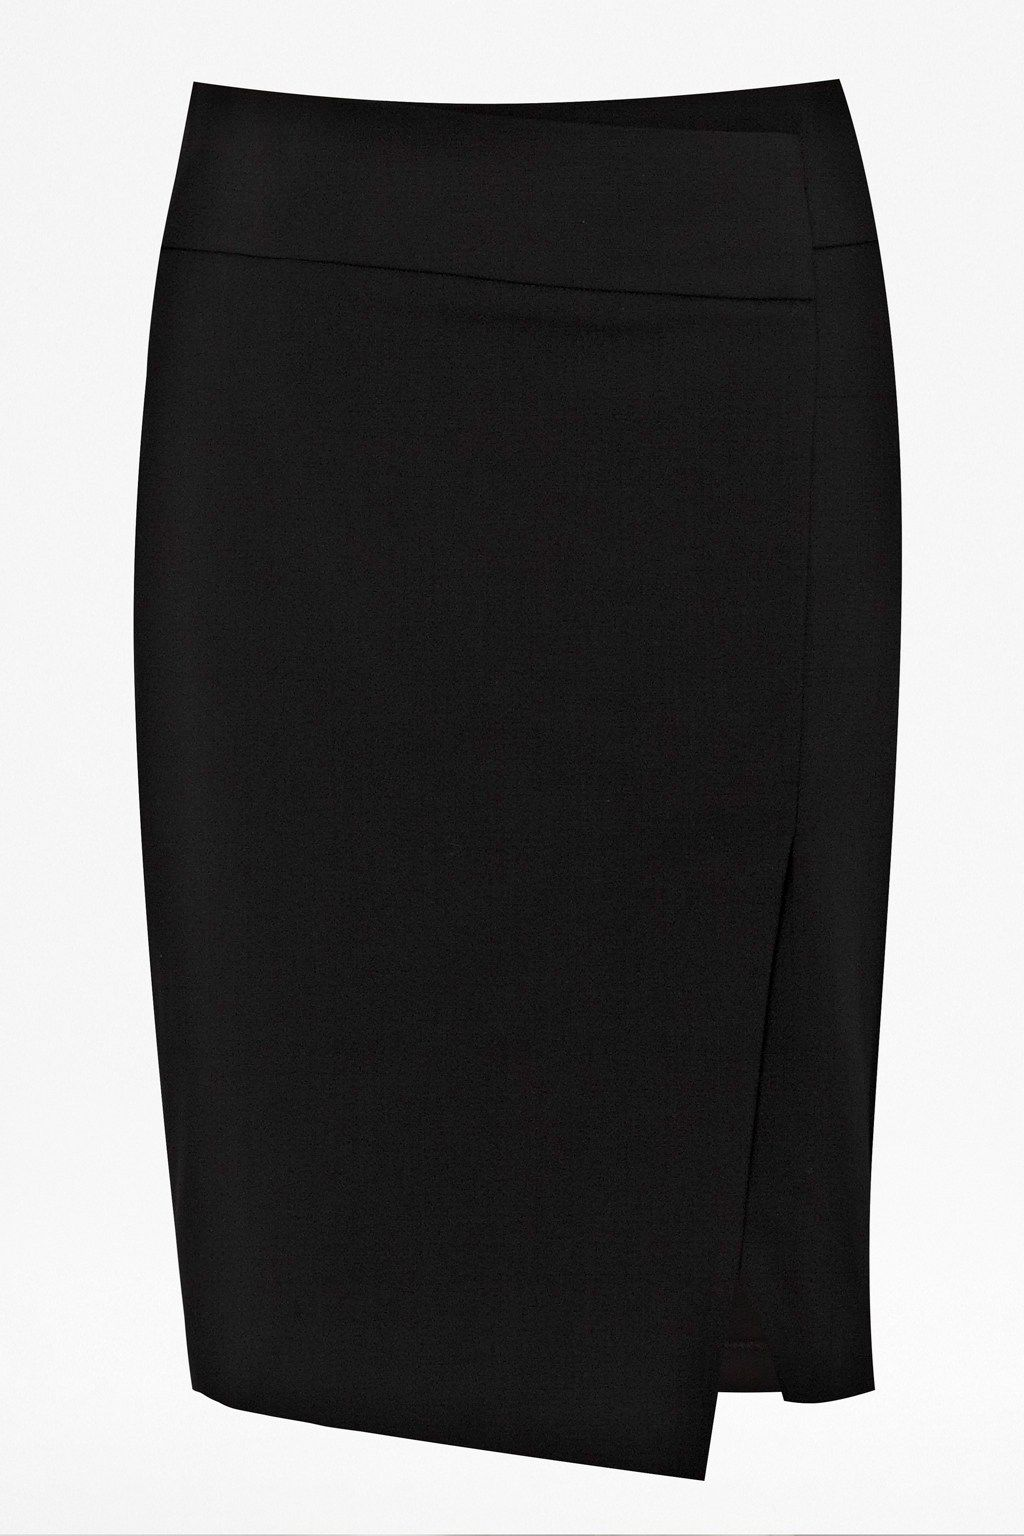 Estelle Stretch Split Skirt